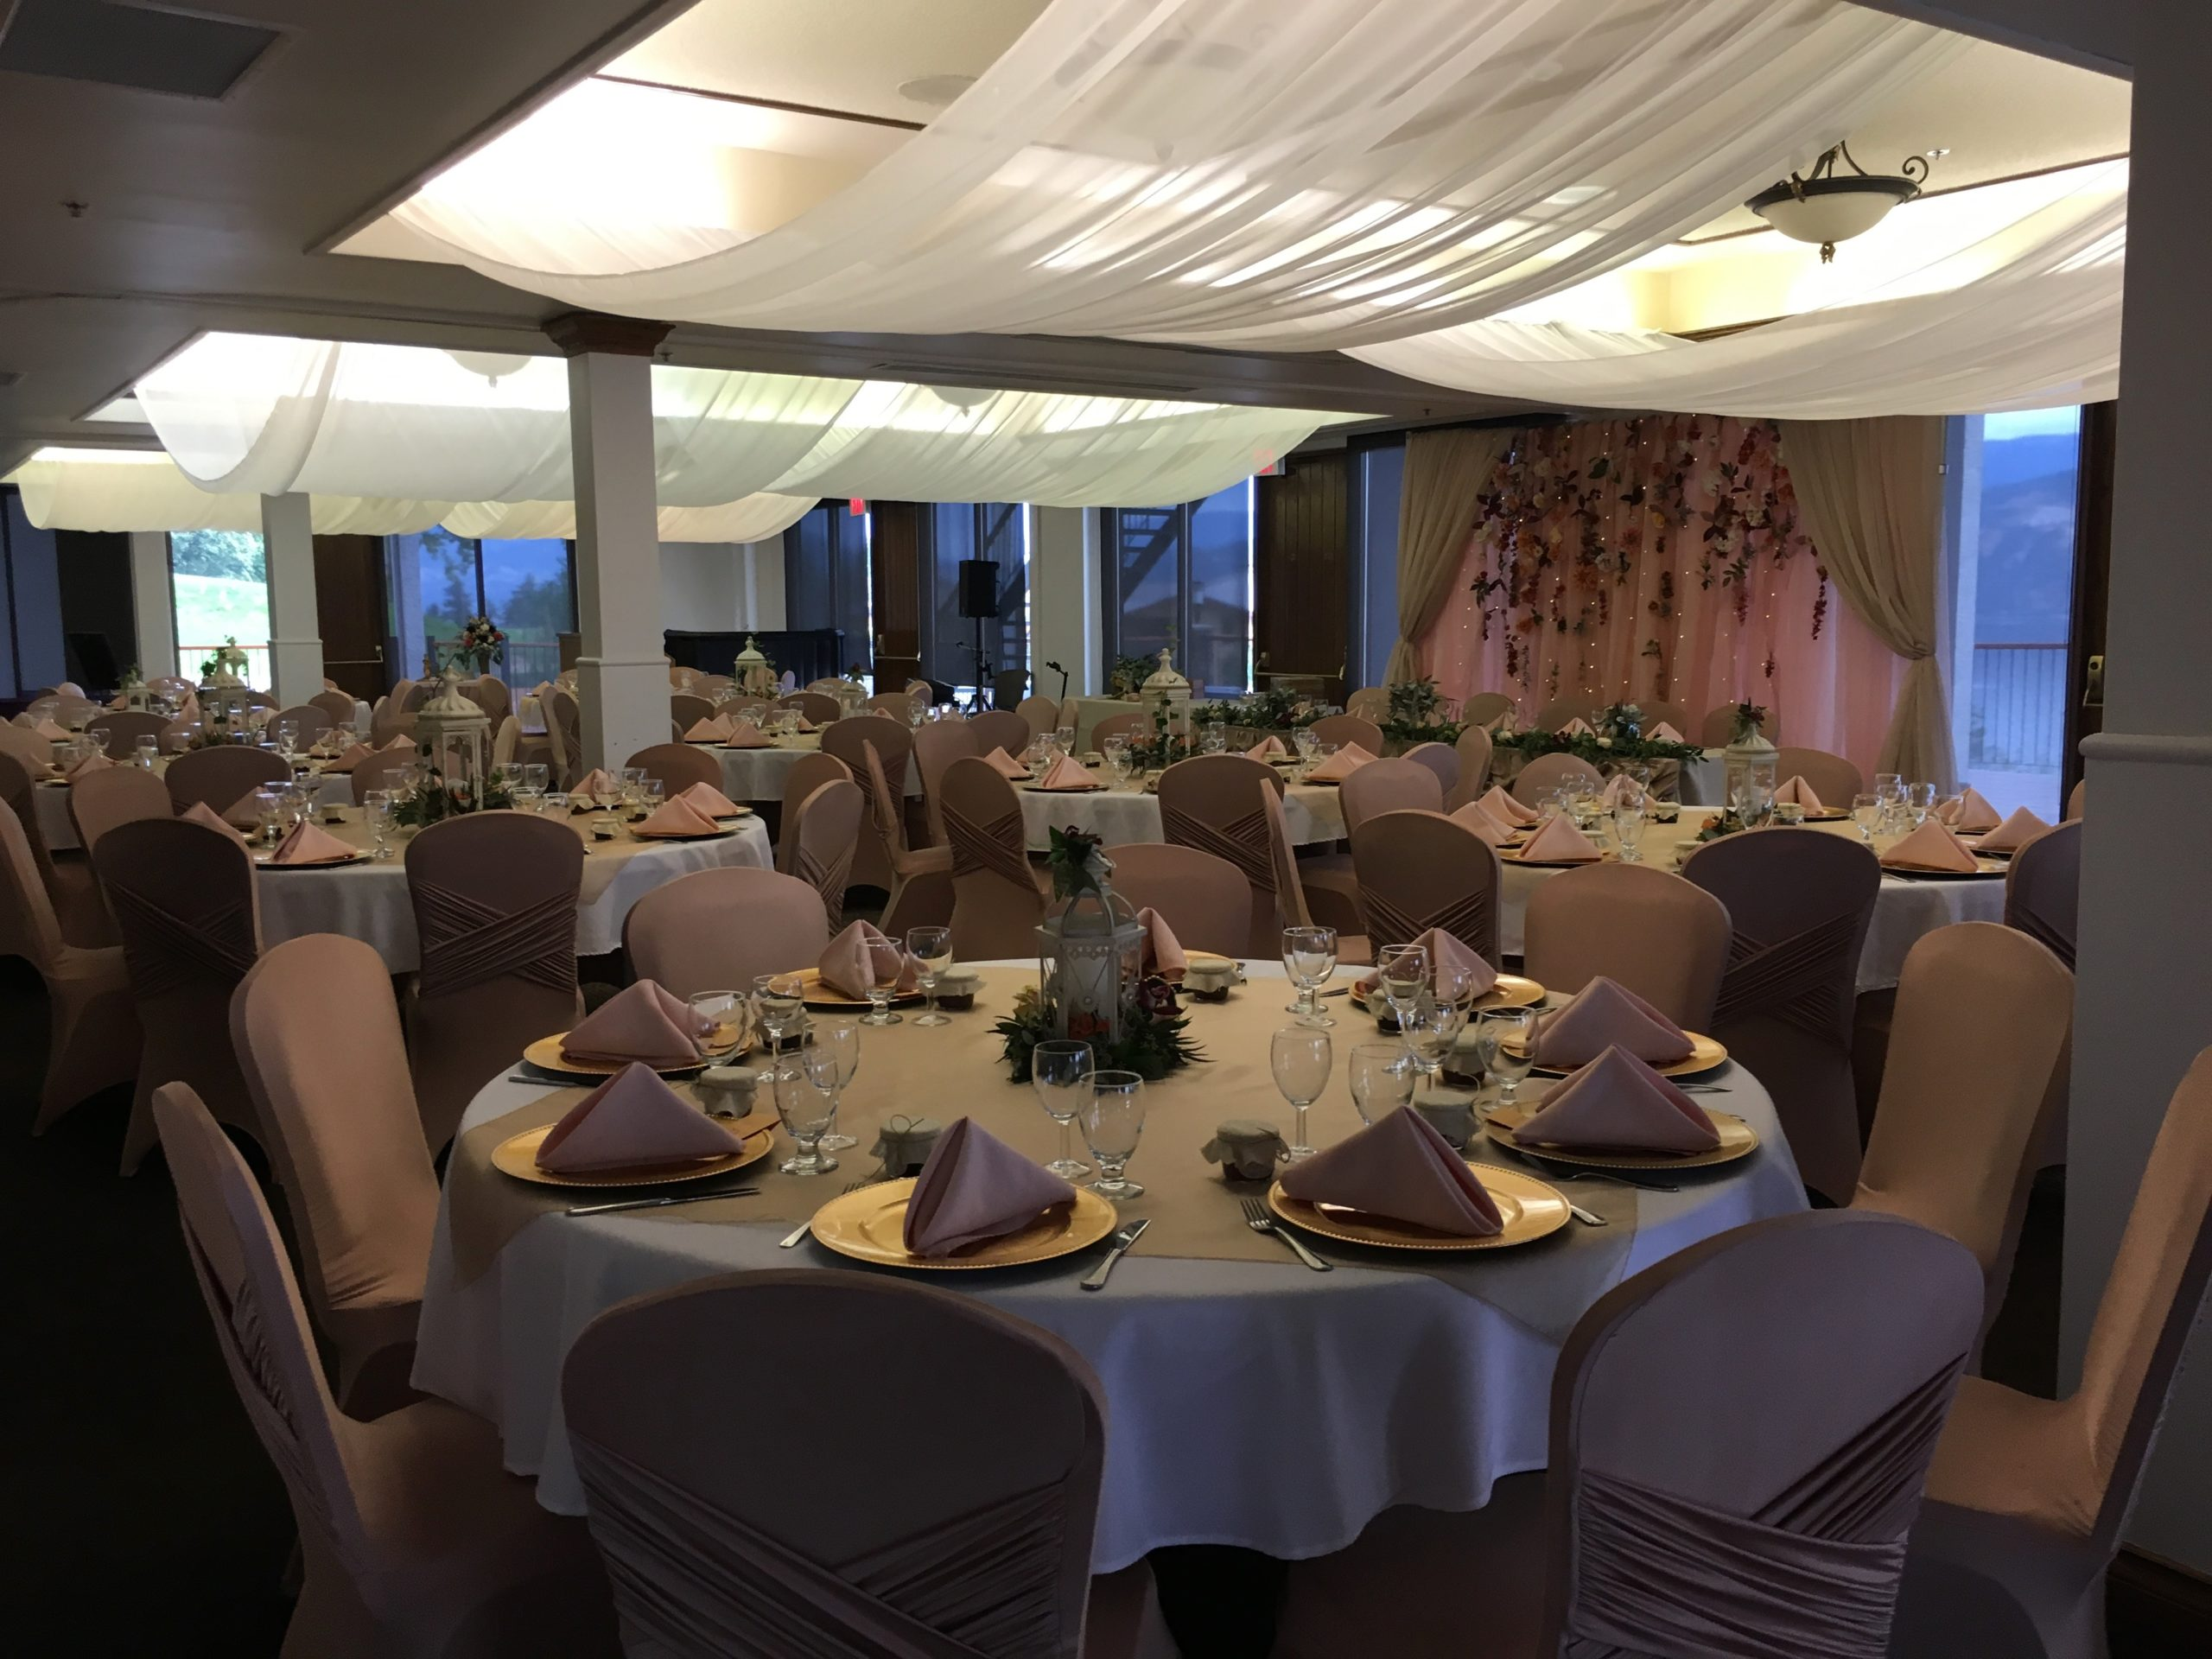 Wedding Reception With Pink Theme Hosted At The Okanagan Beach Club